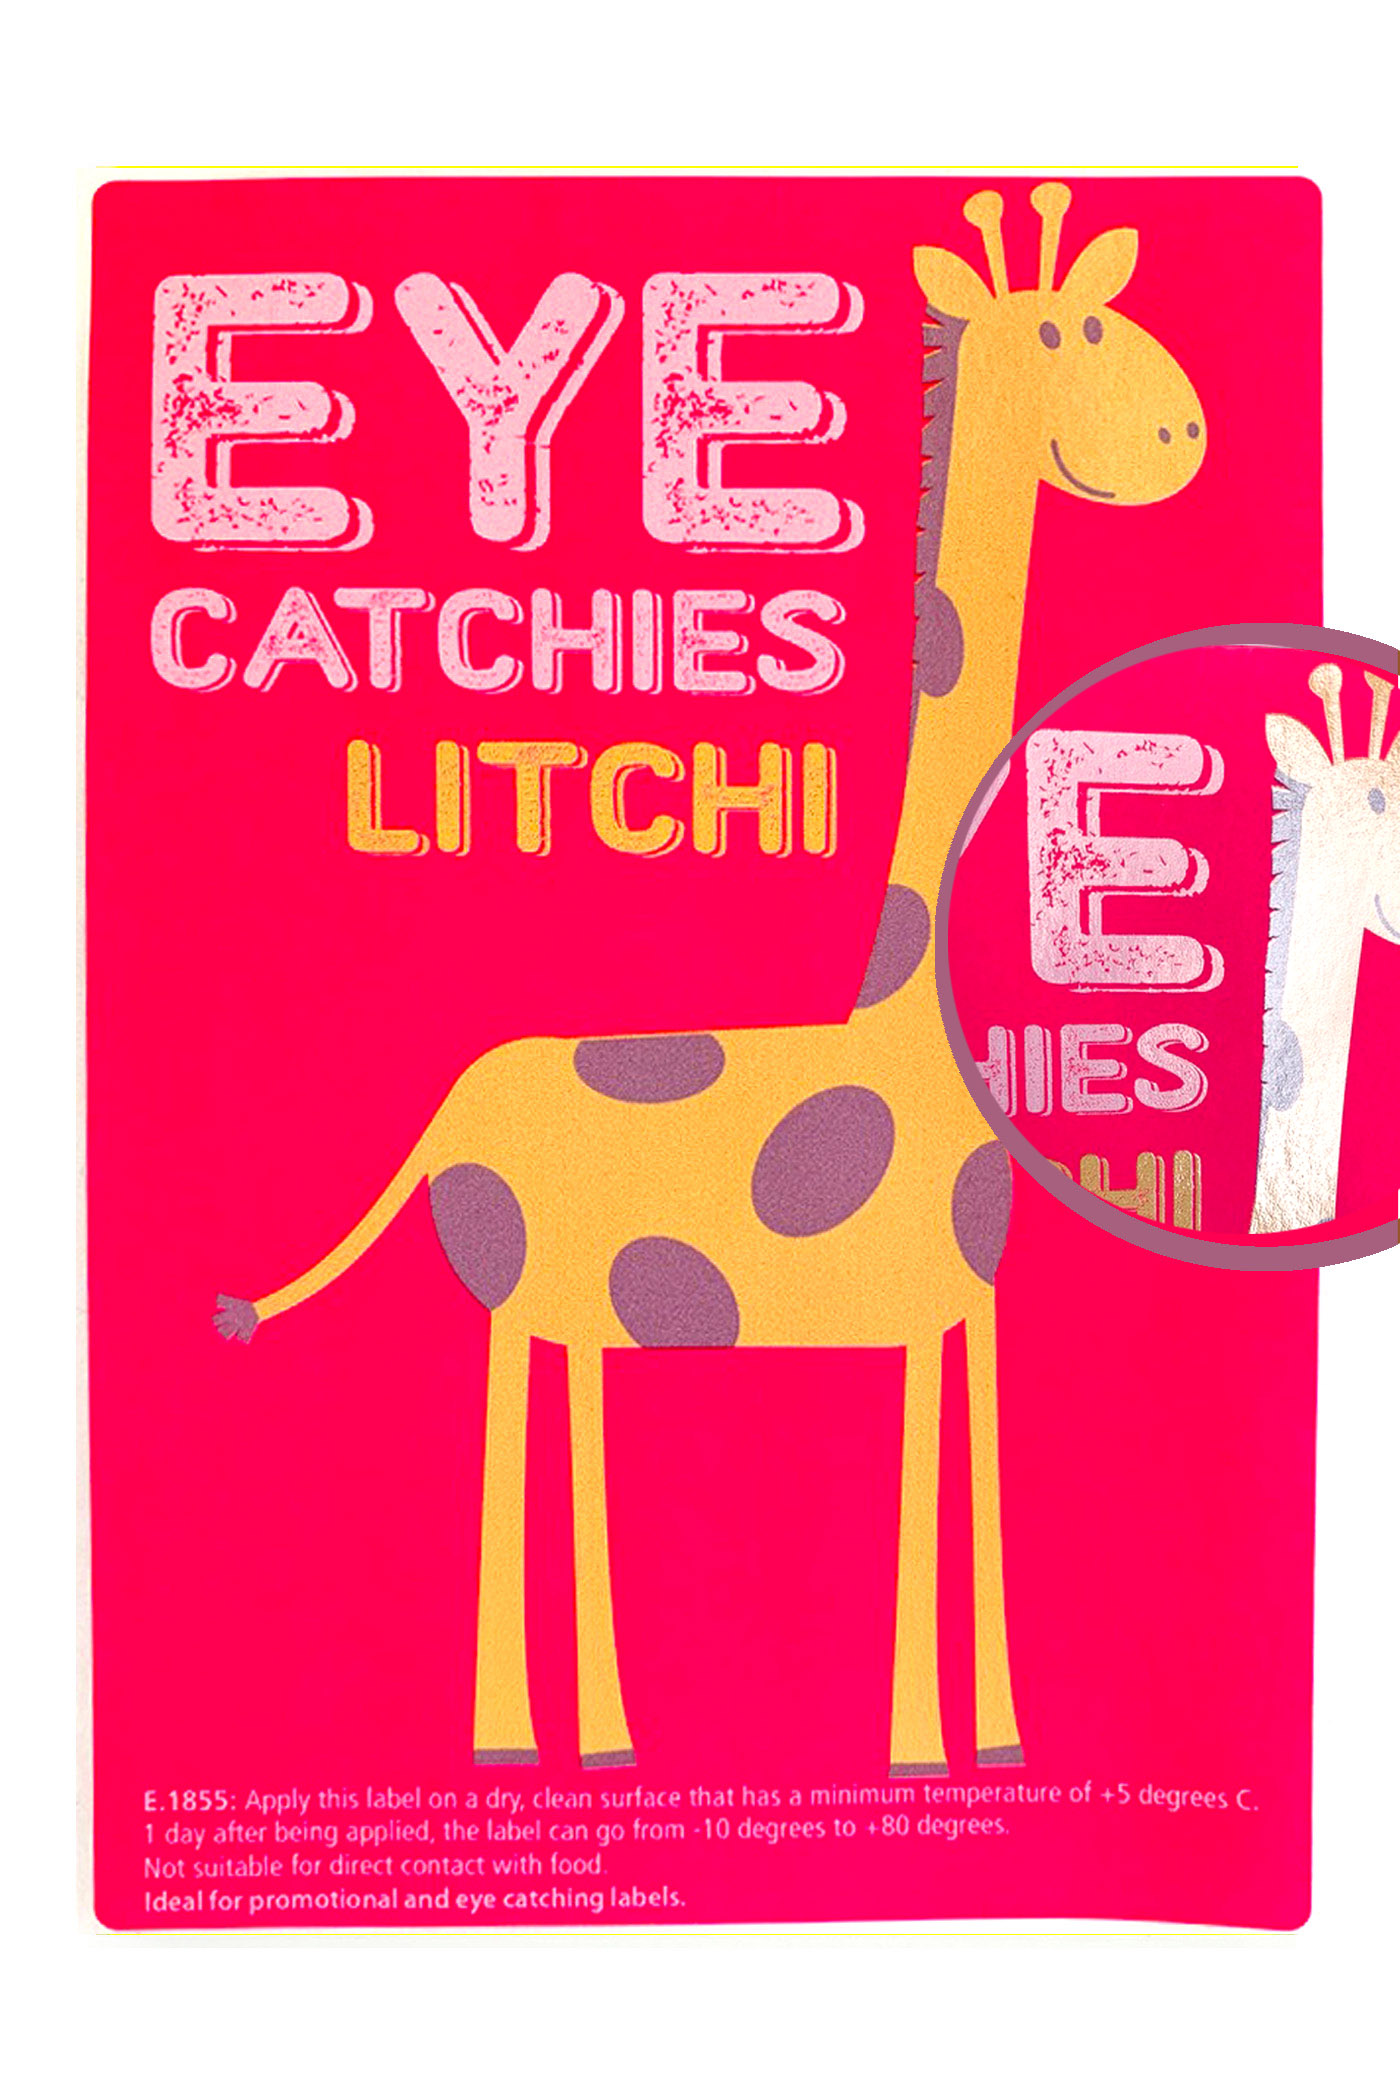 Label eye catchies litchi